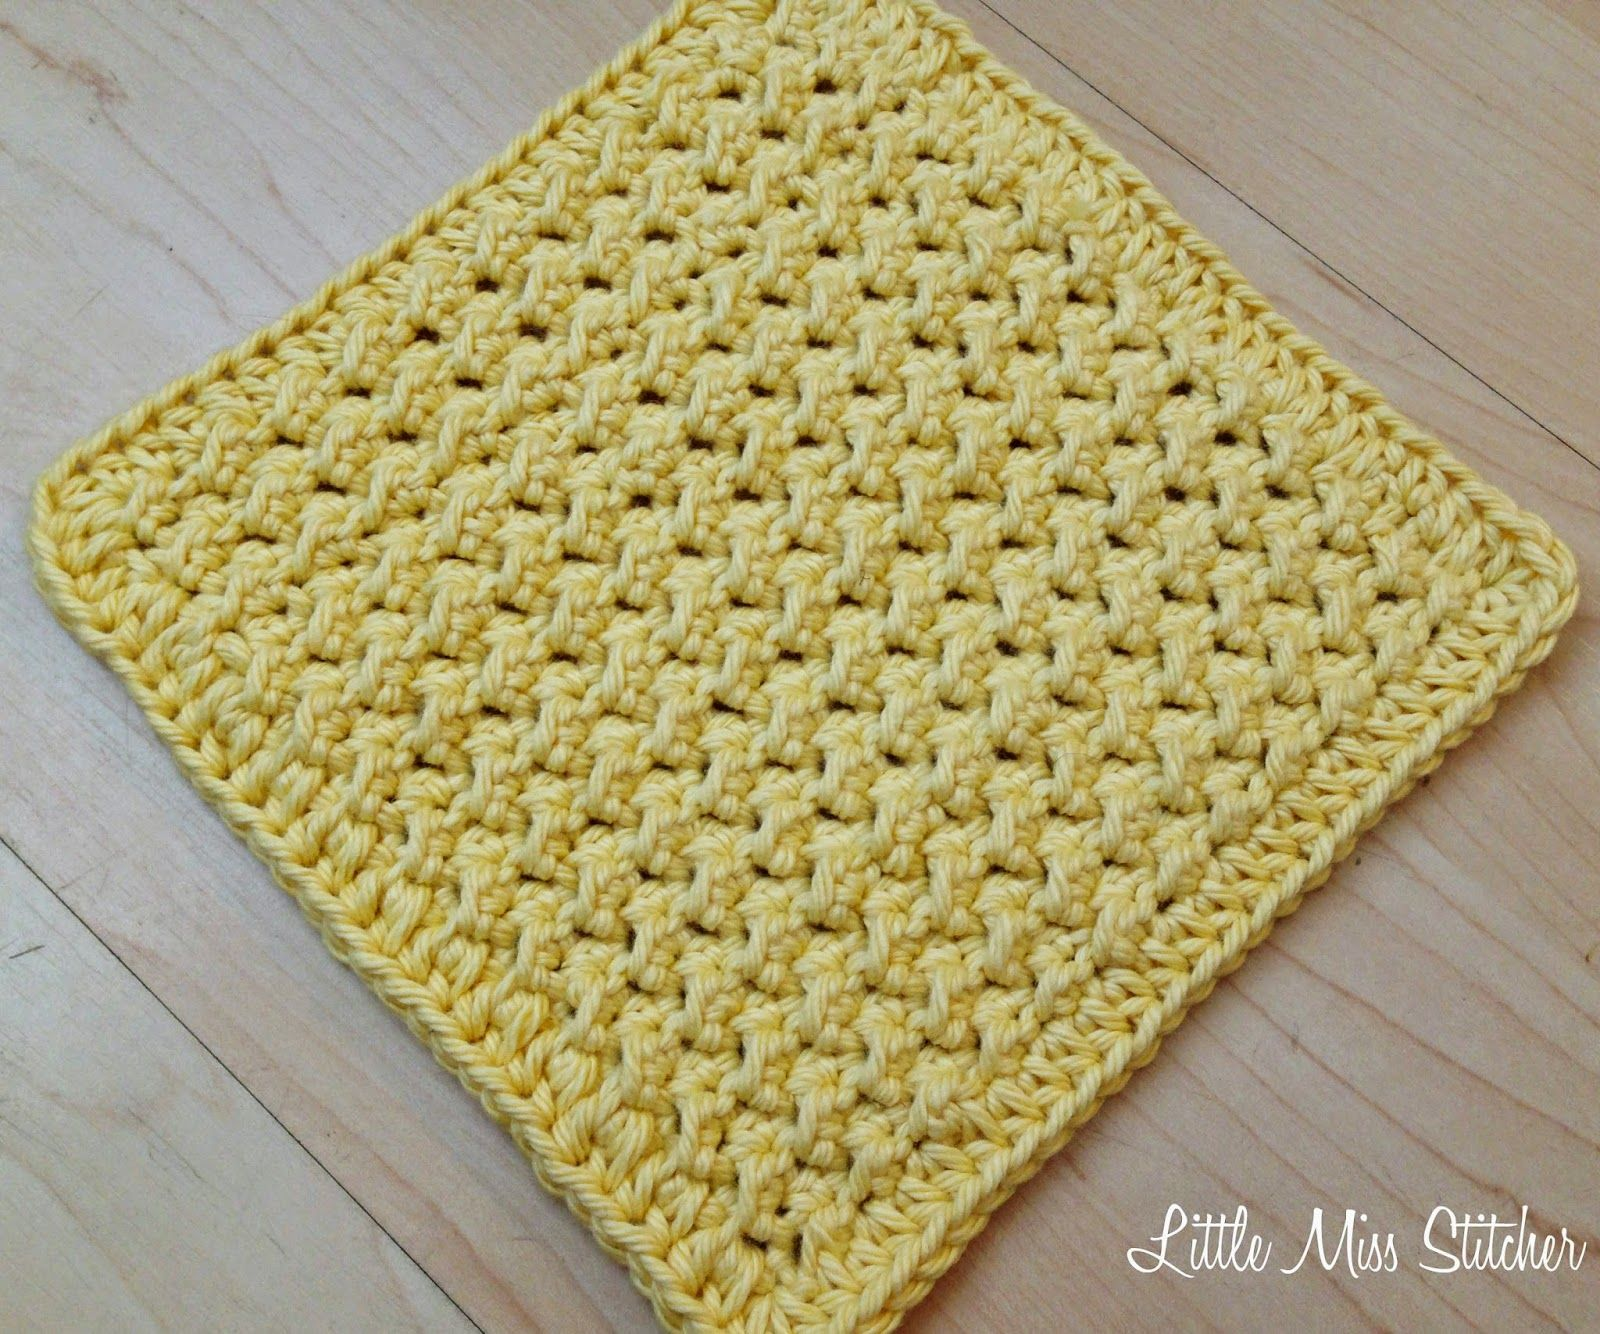 About 2 months ago, I share 5 Free Knit Dishcloth Patterns . Today ...